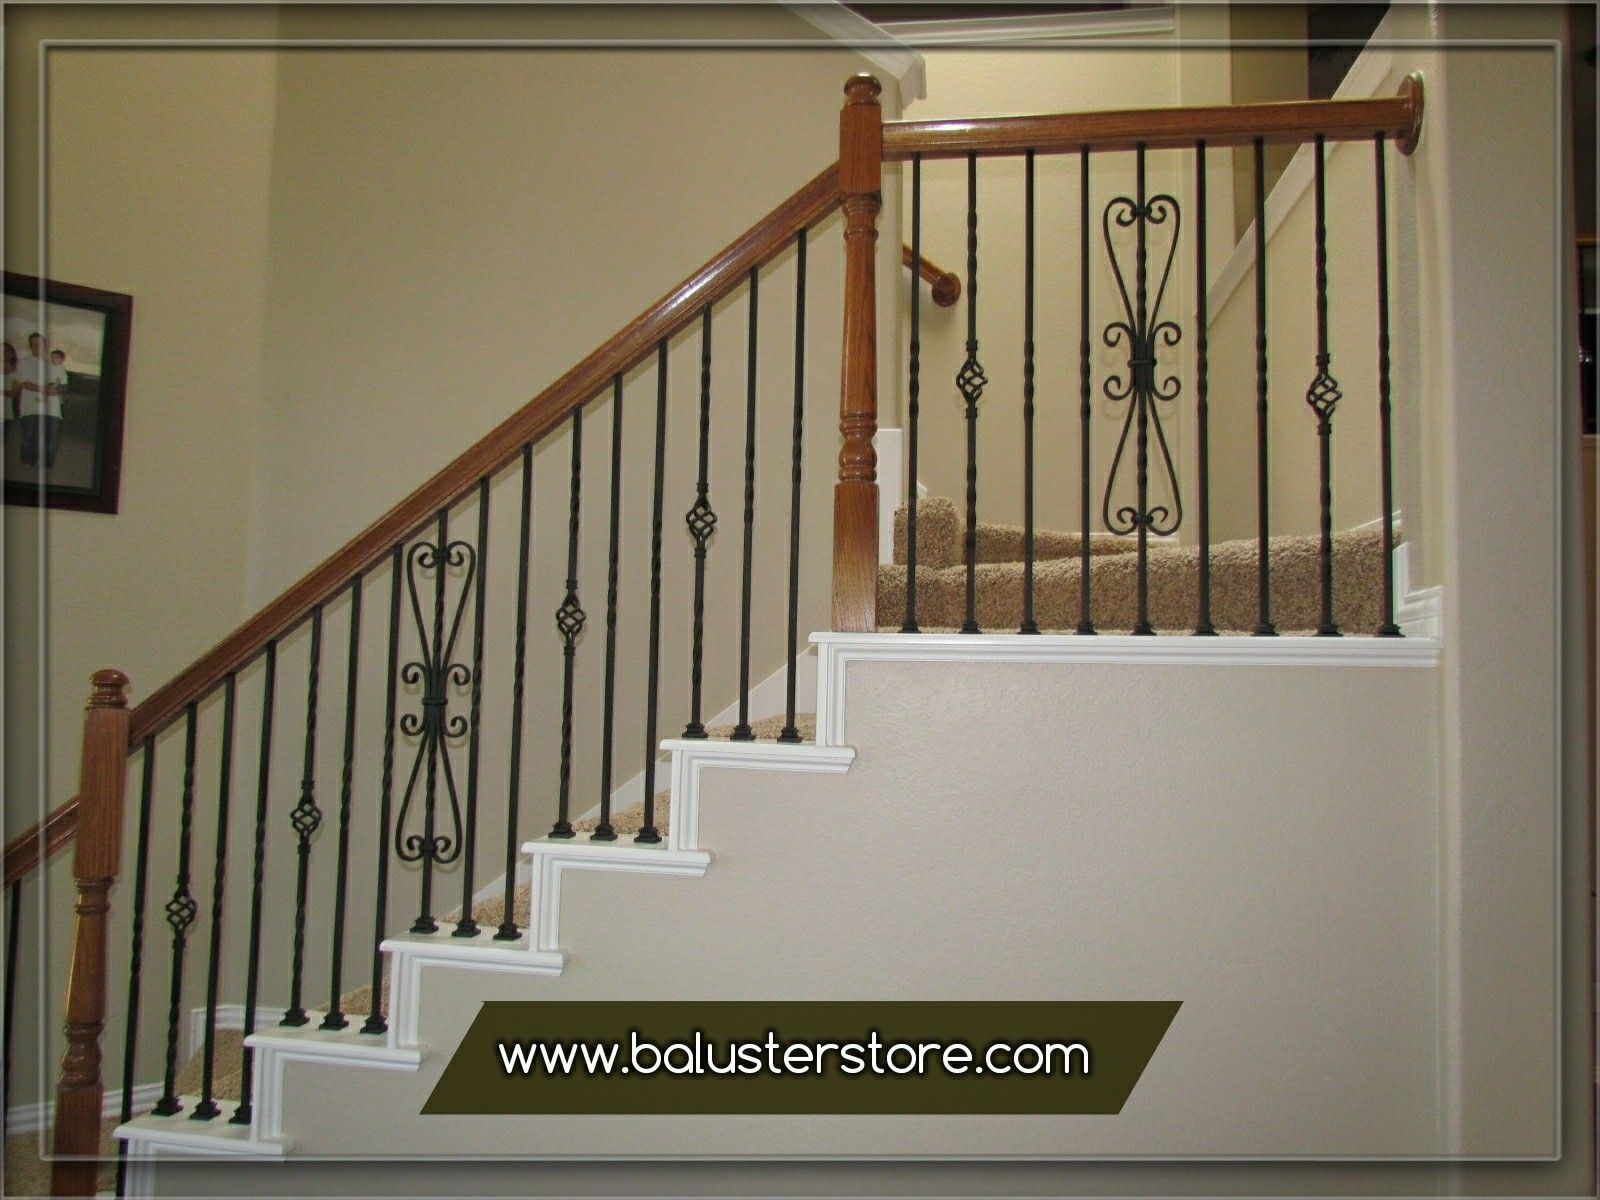 Iron Stair Balusters Parts Iron Handrails Interior Stair Iron Balusters  Wrought Iron Stair Railings Kits Wrought Iron Stair Railings Interior Rod  Iron Stair ...